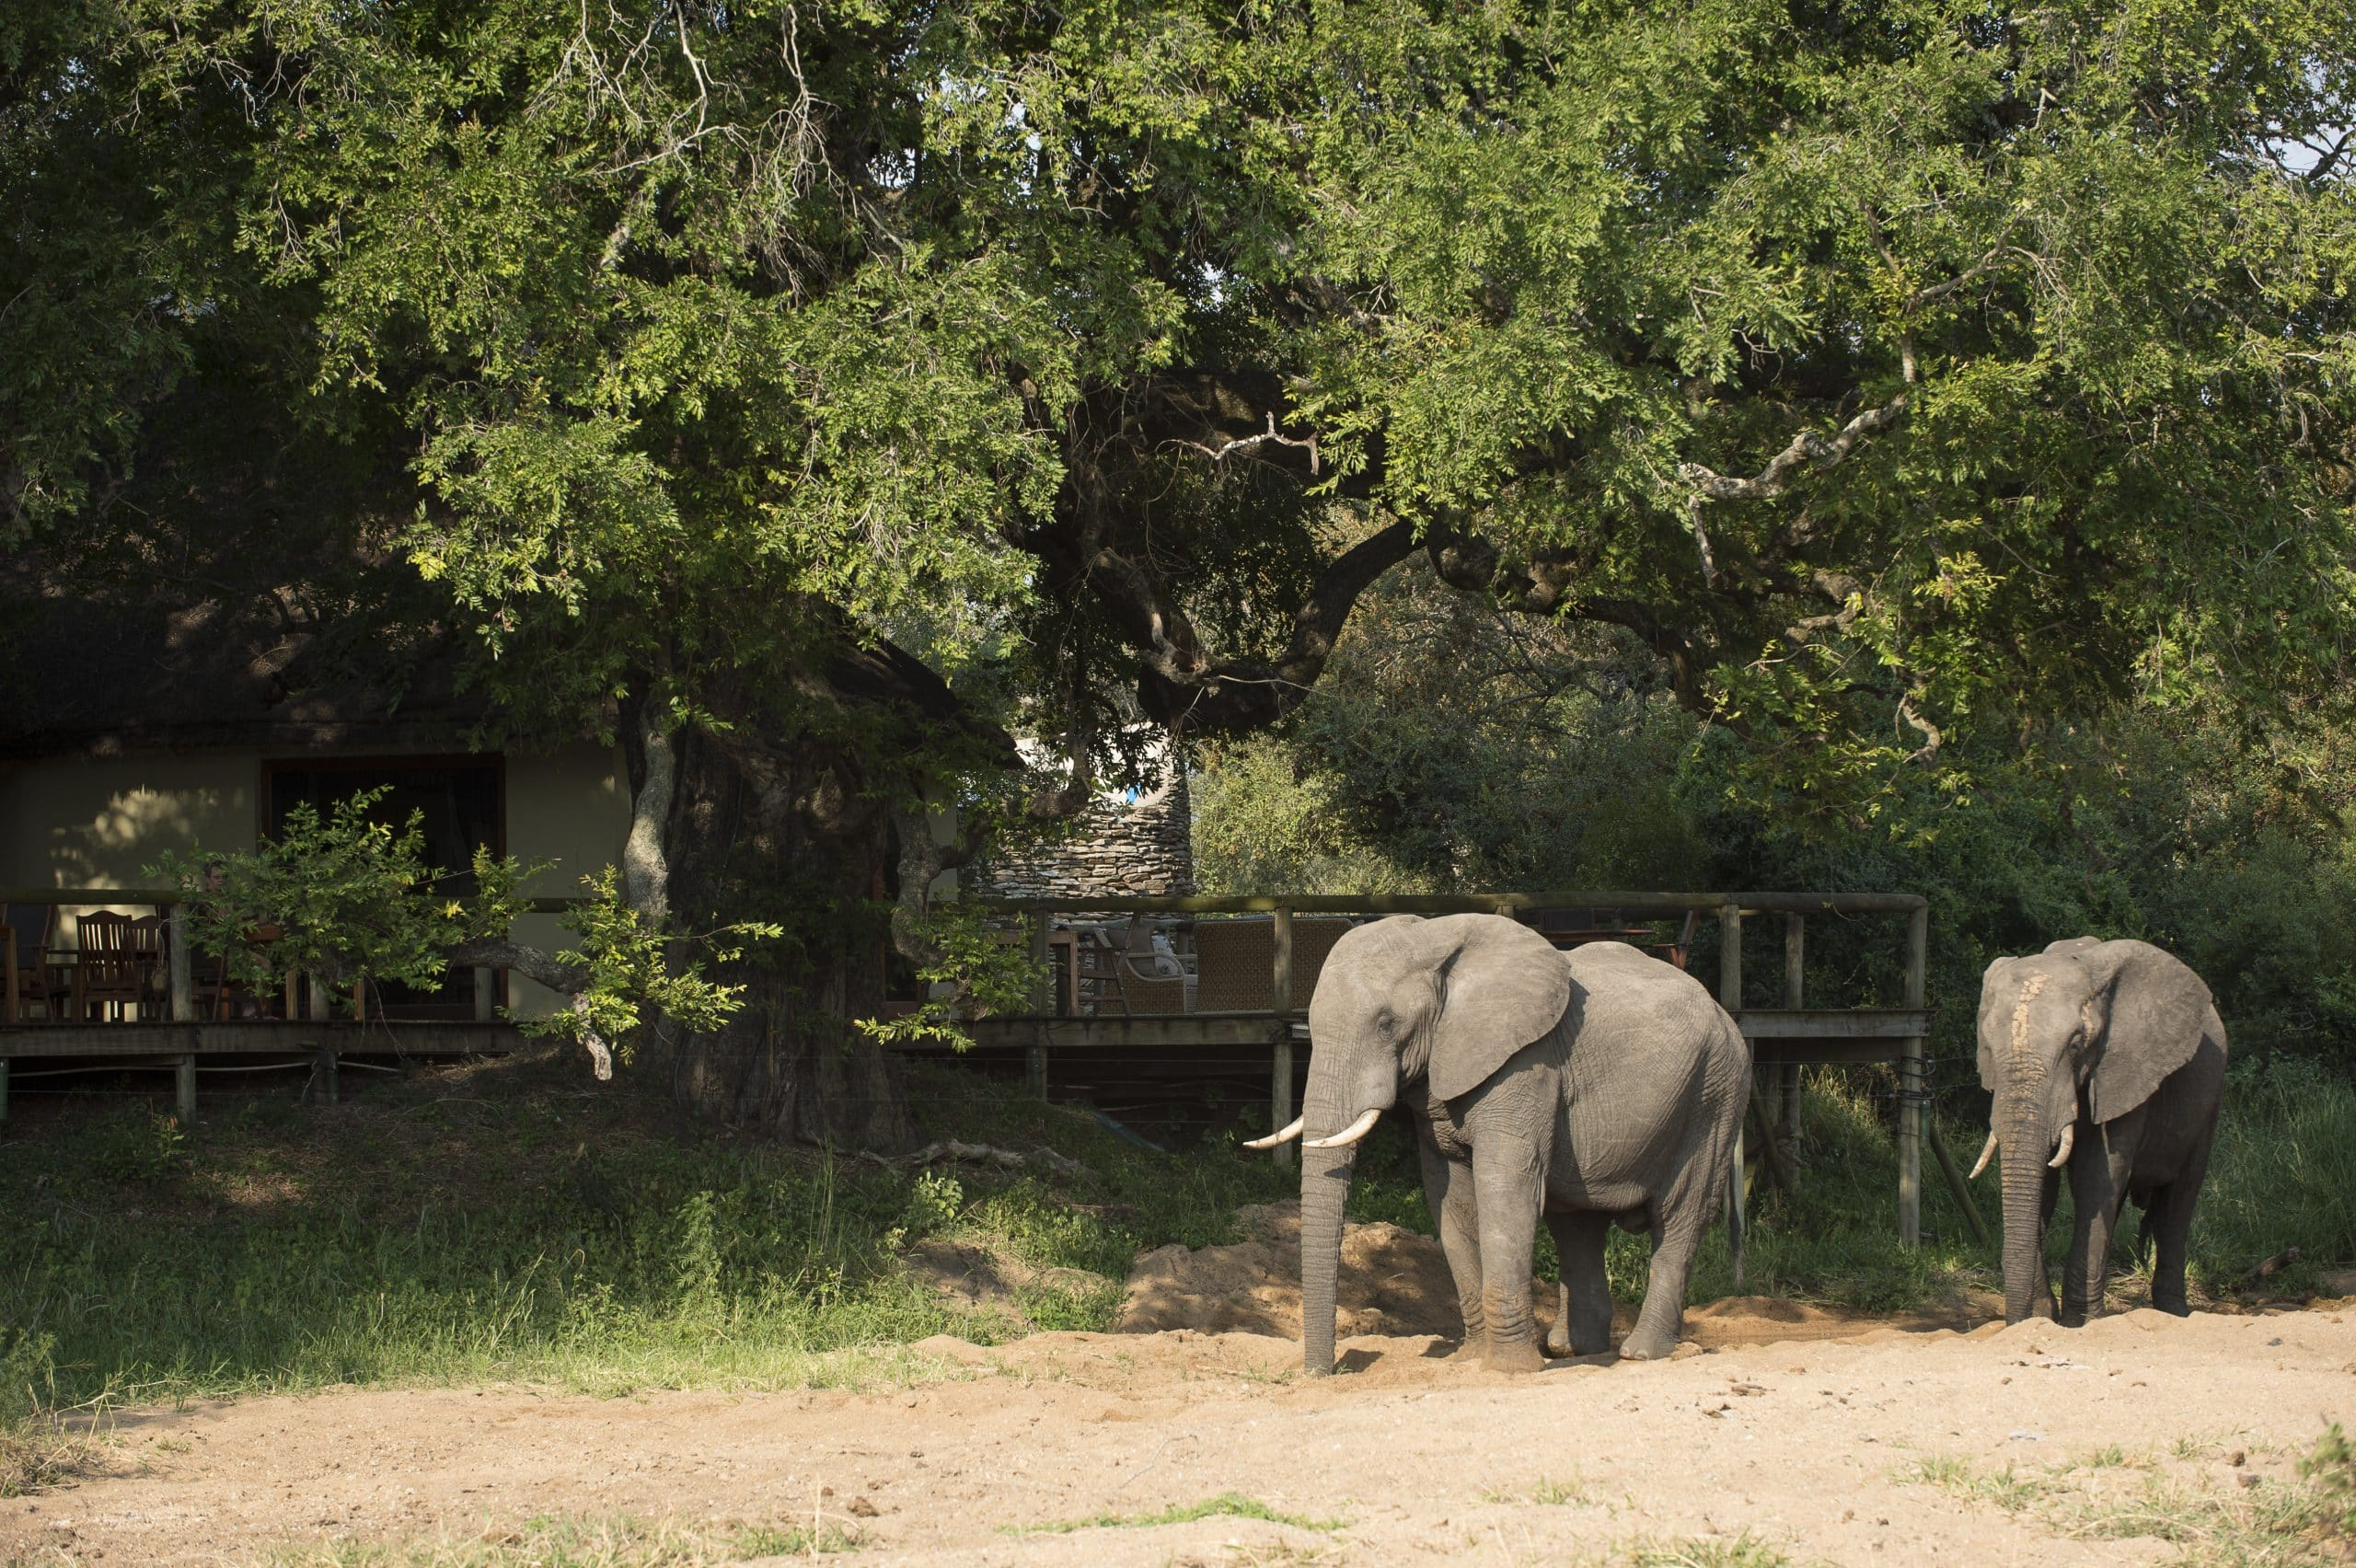 Elephant at Tintswalo Safari Lodge